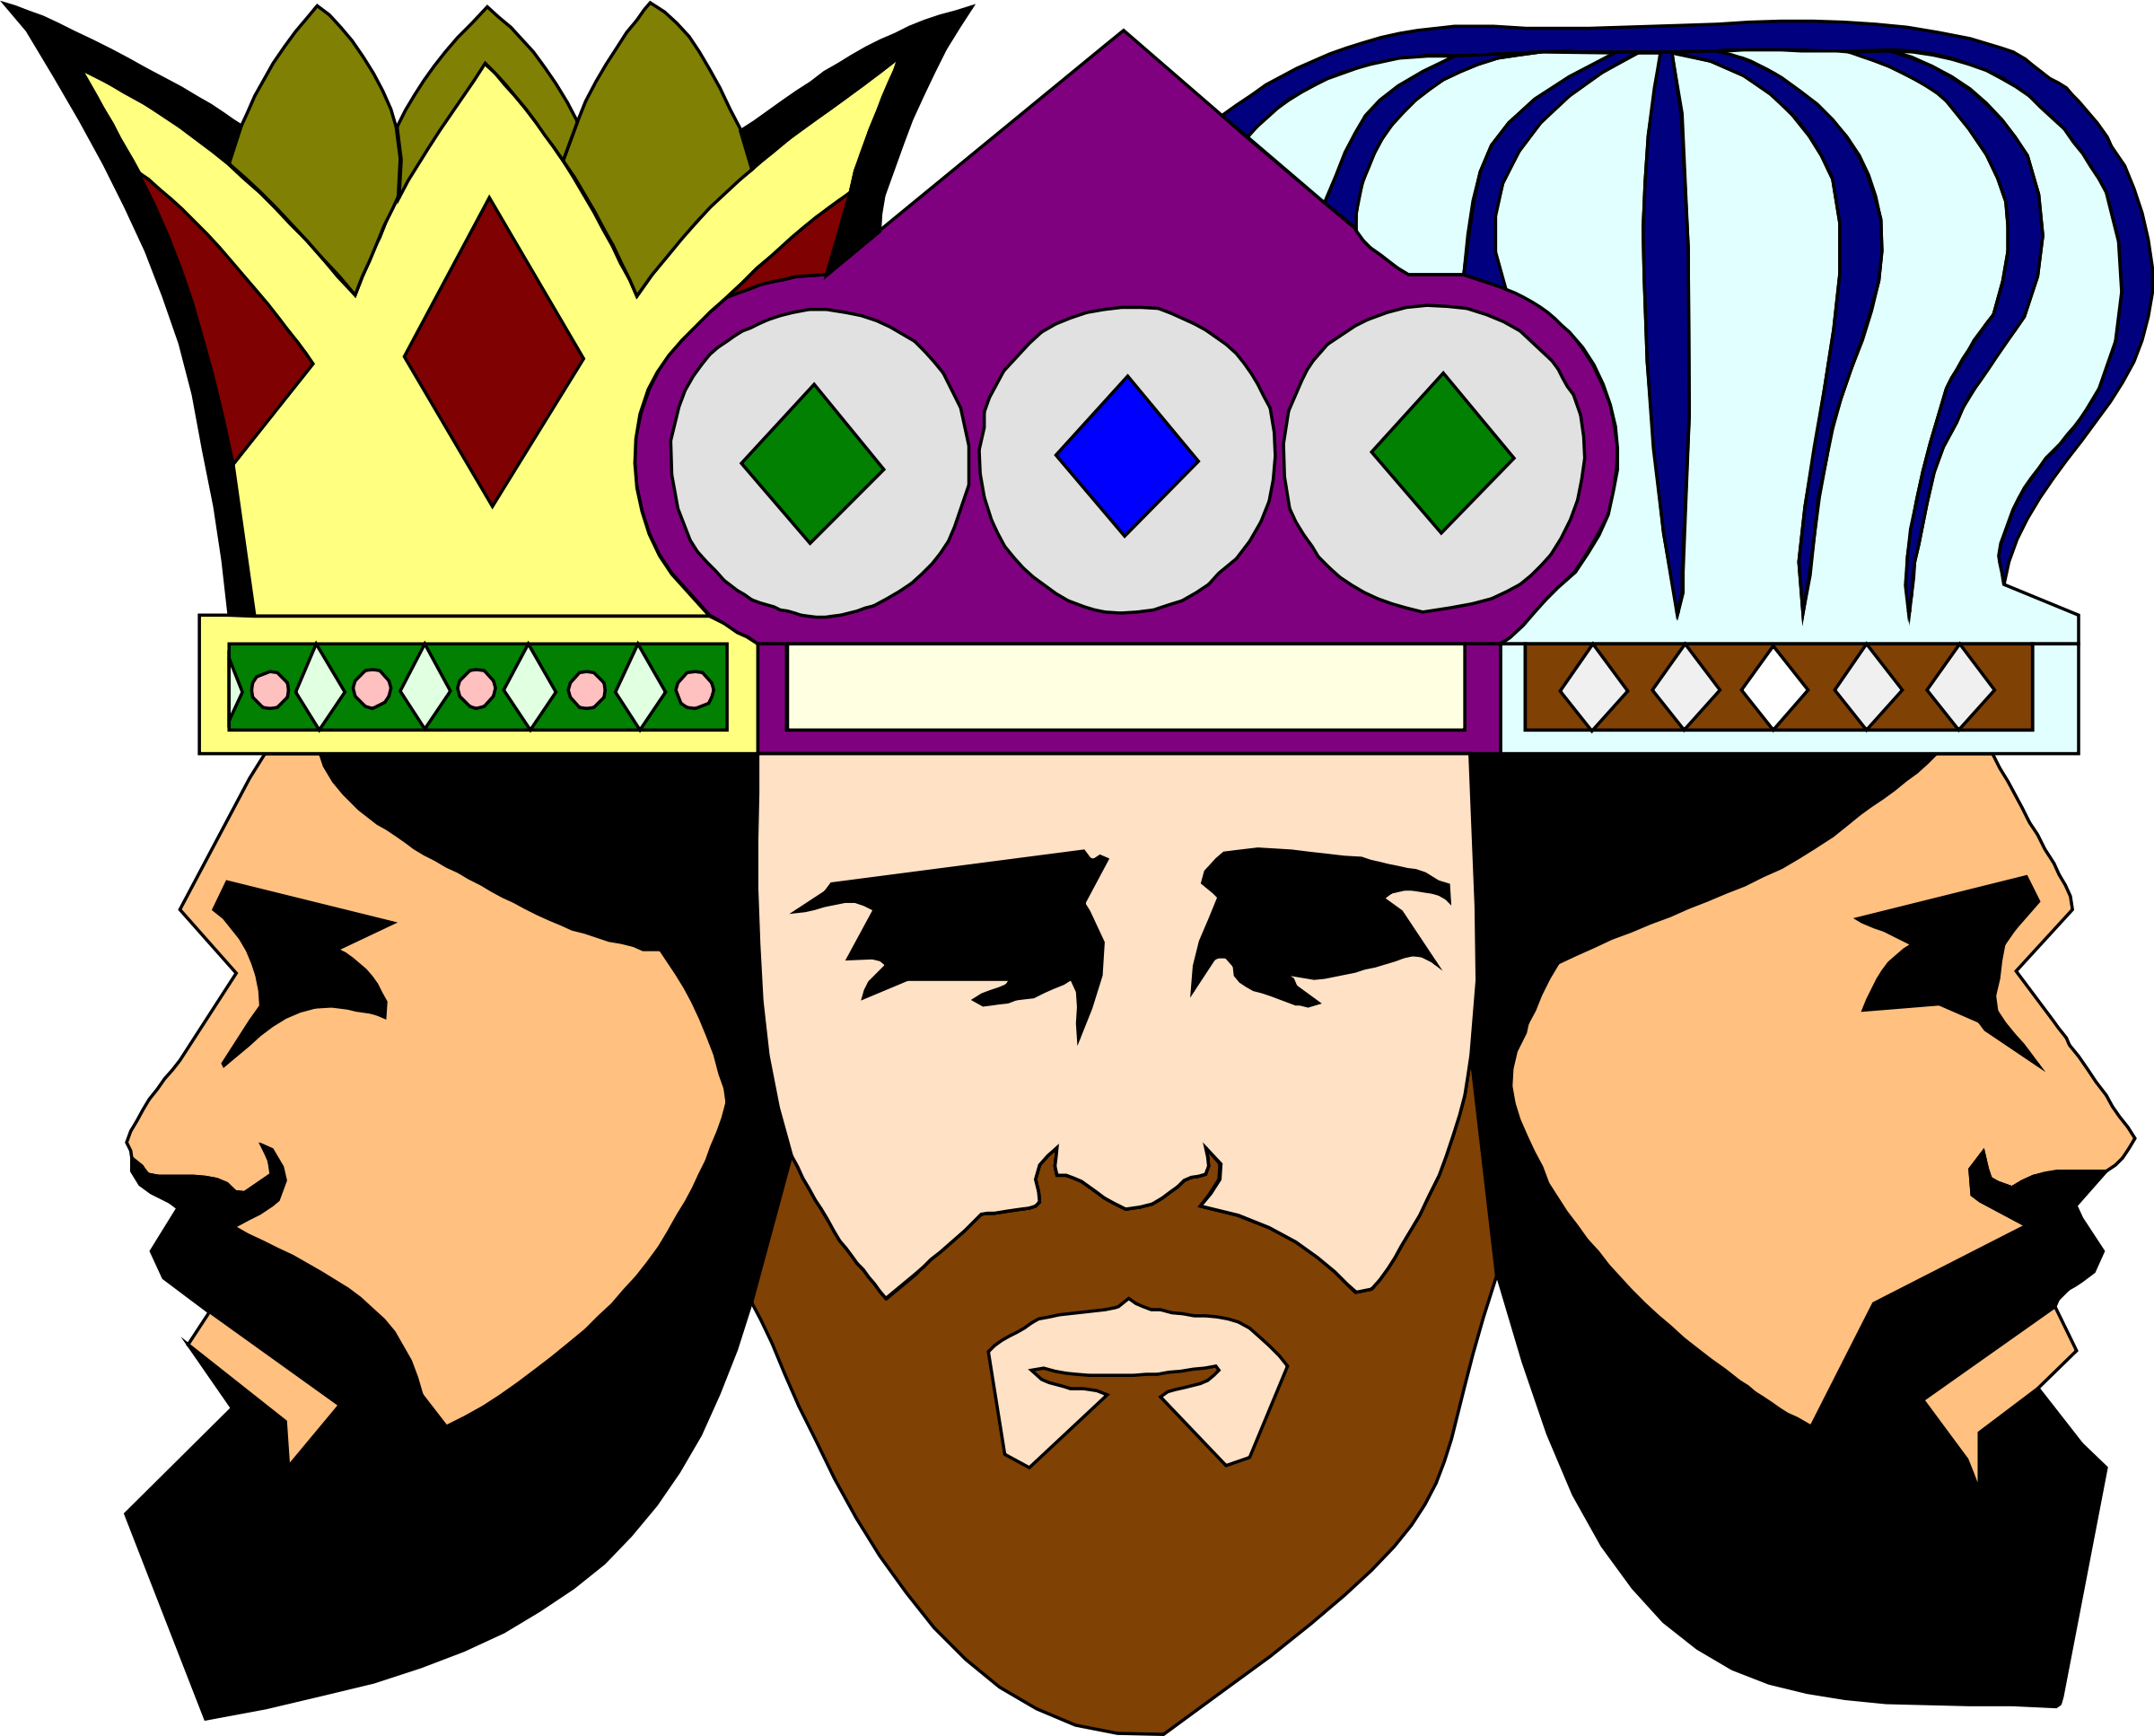 3 clipart kings. Big image png